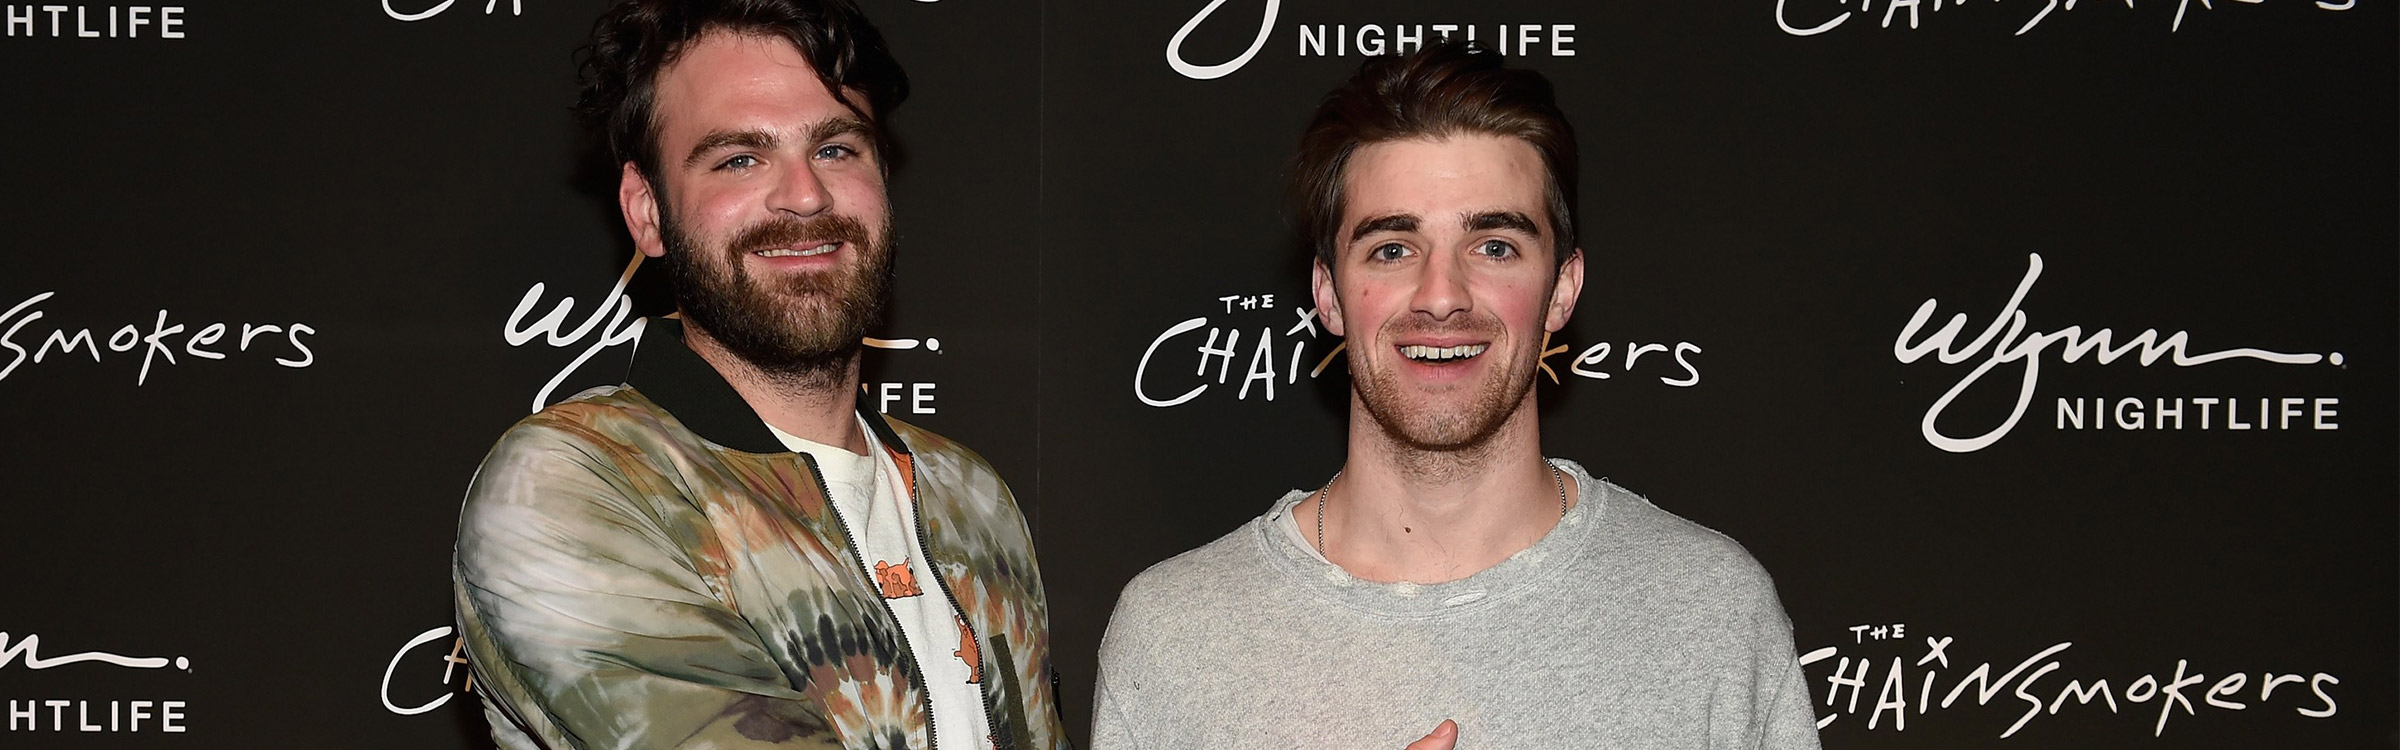 Chainsmokers header